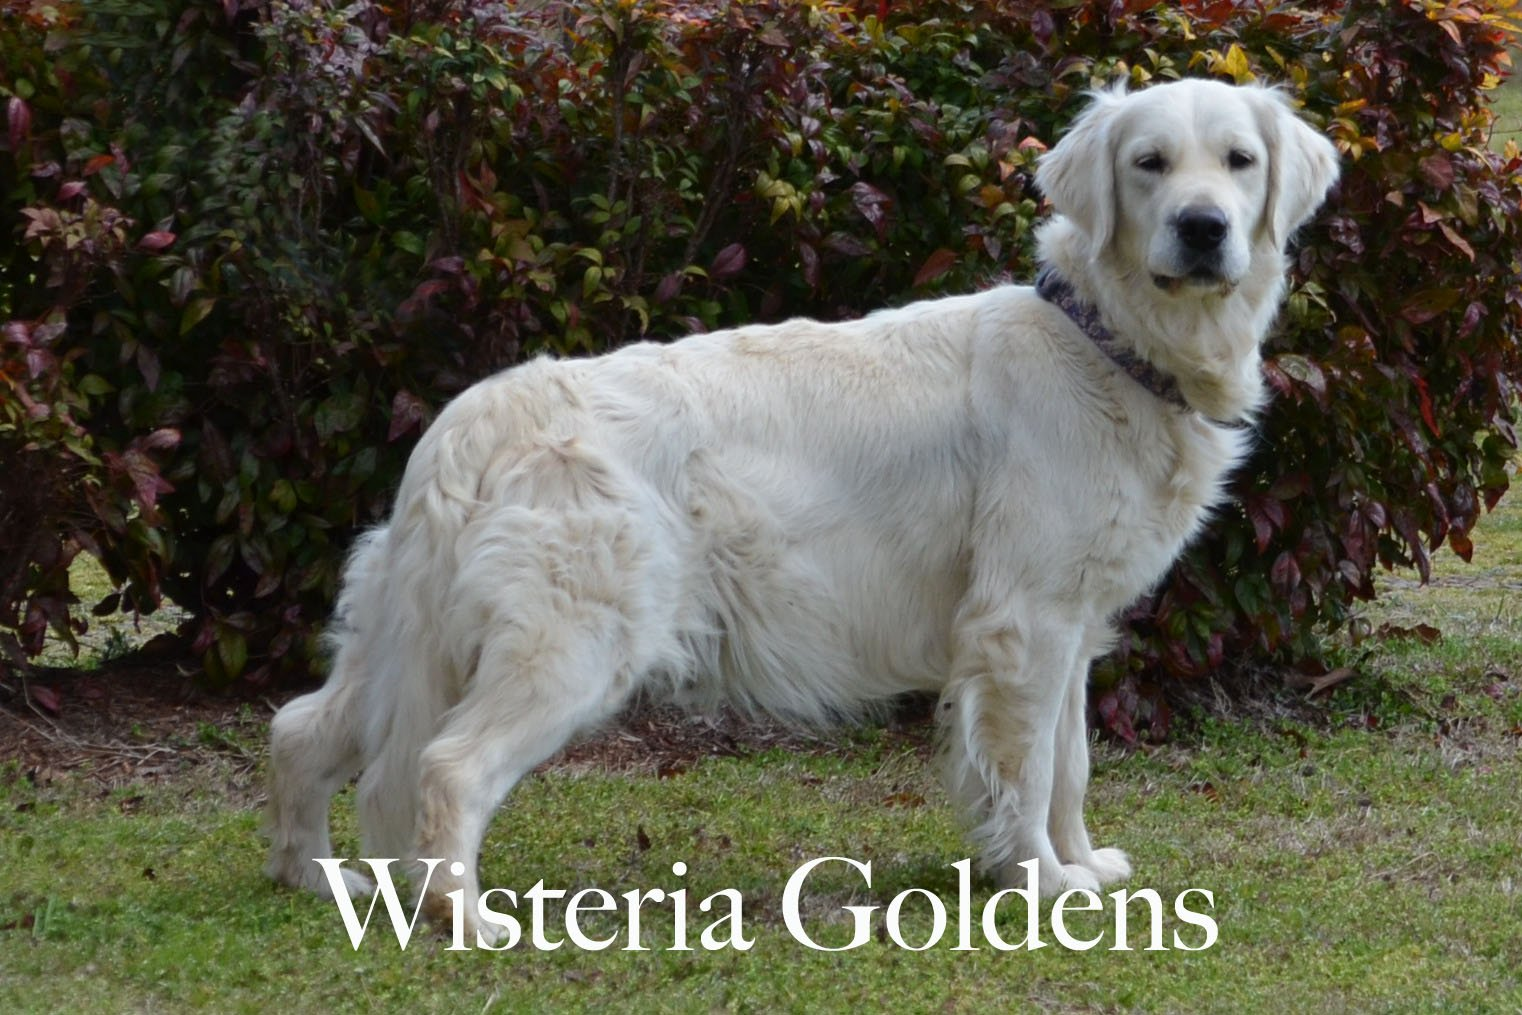 Harmony-4-harmony-full-english-creme-goldens-retrievers-wisteria-goldens